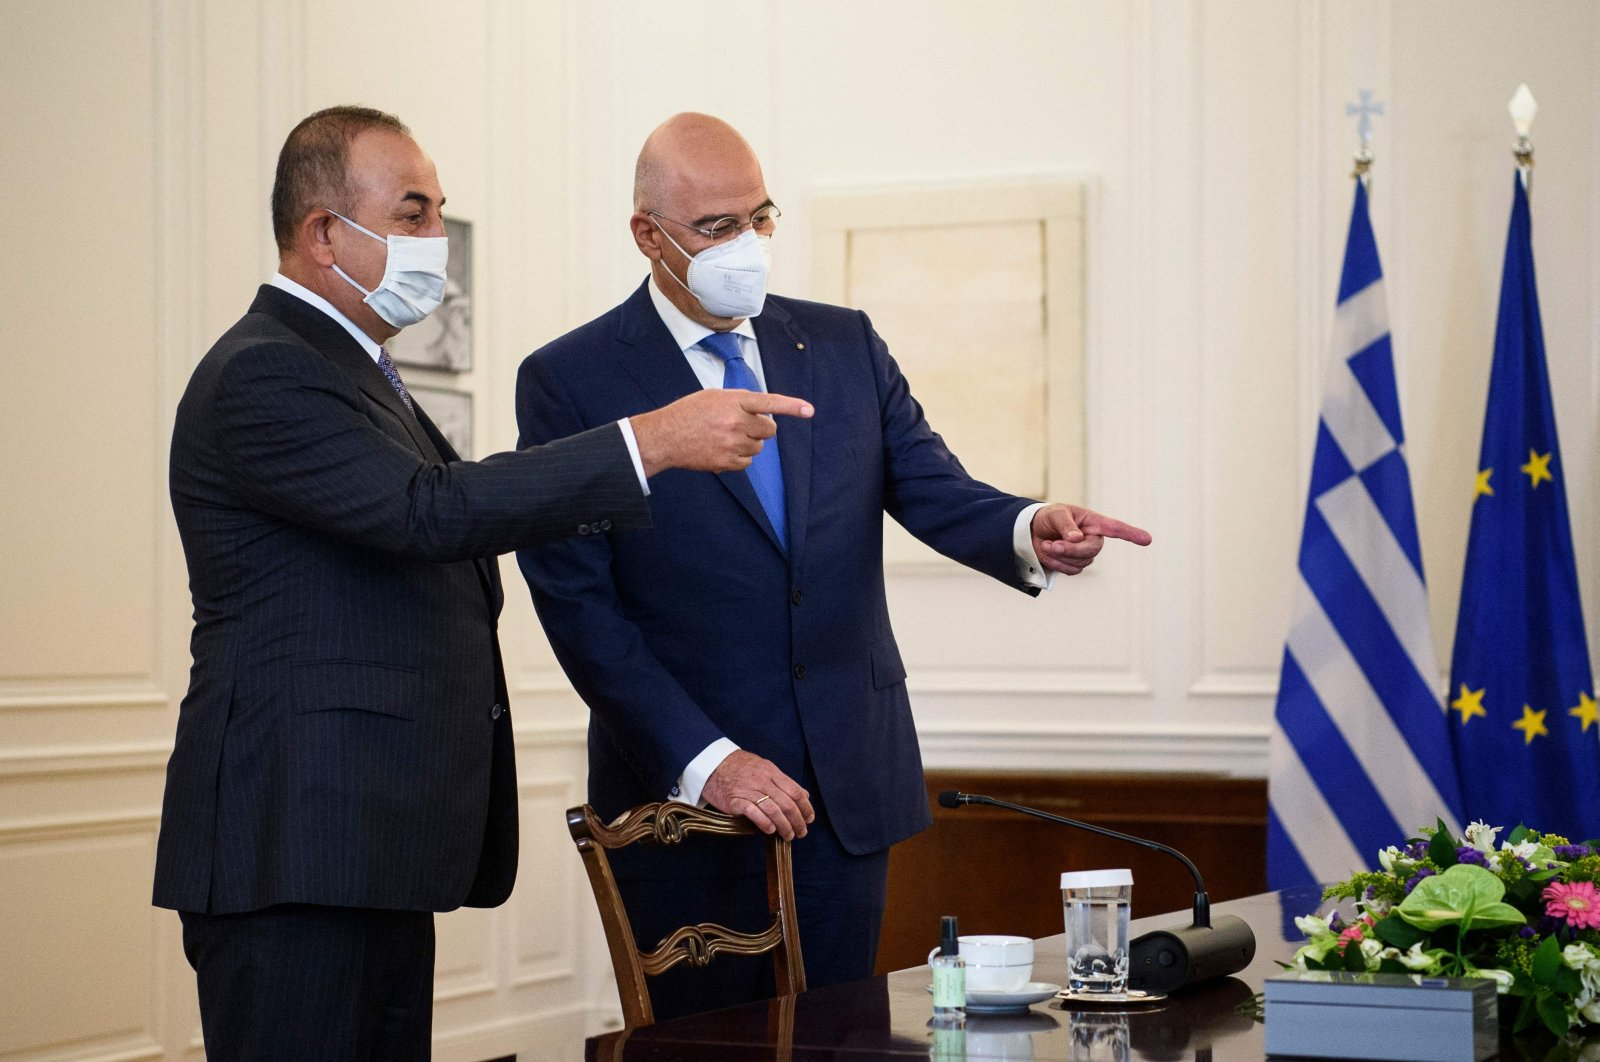 Foreign Minister Mevlüt Çavuşoğlu (L) and Greek Foreign Minister Nikos Dendias speak before their meeting at the Greek Ministry of Foreign Affairs in Athens on May 31, 2021. (AFP Photo)